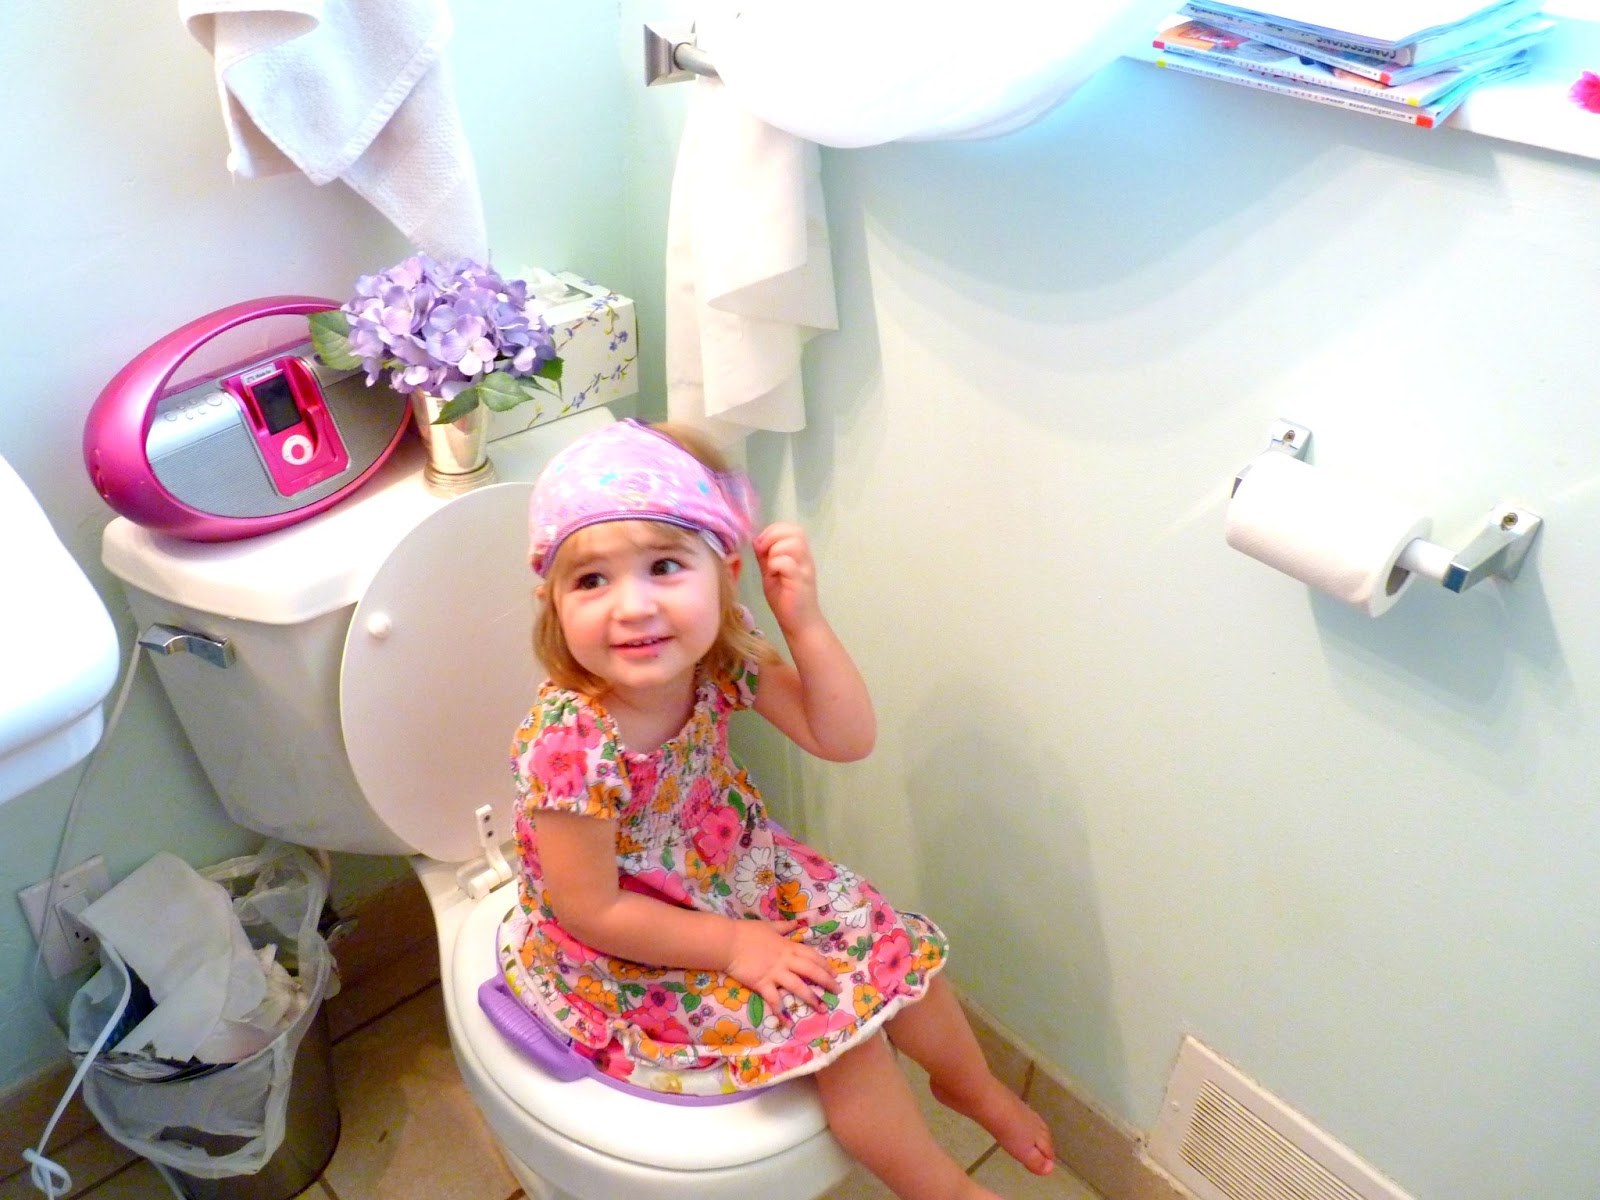 Potty Training Tips - What is the best time to start Potty